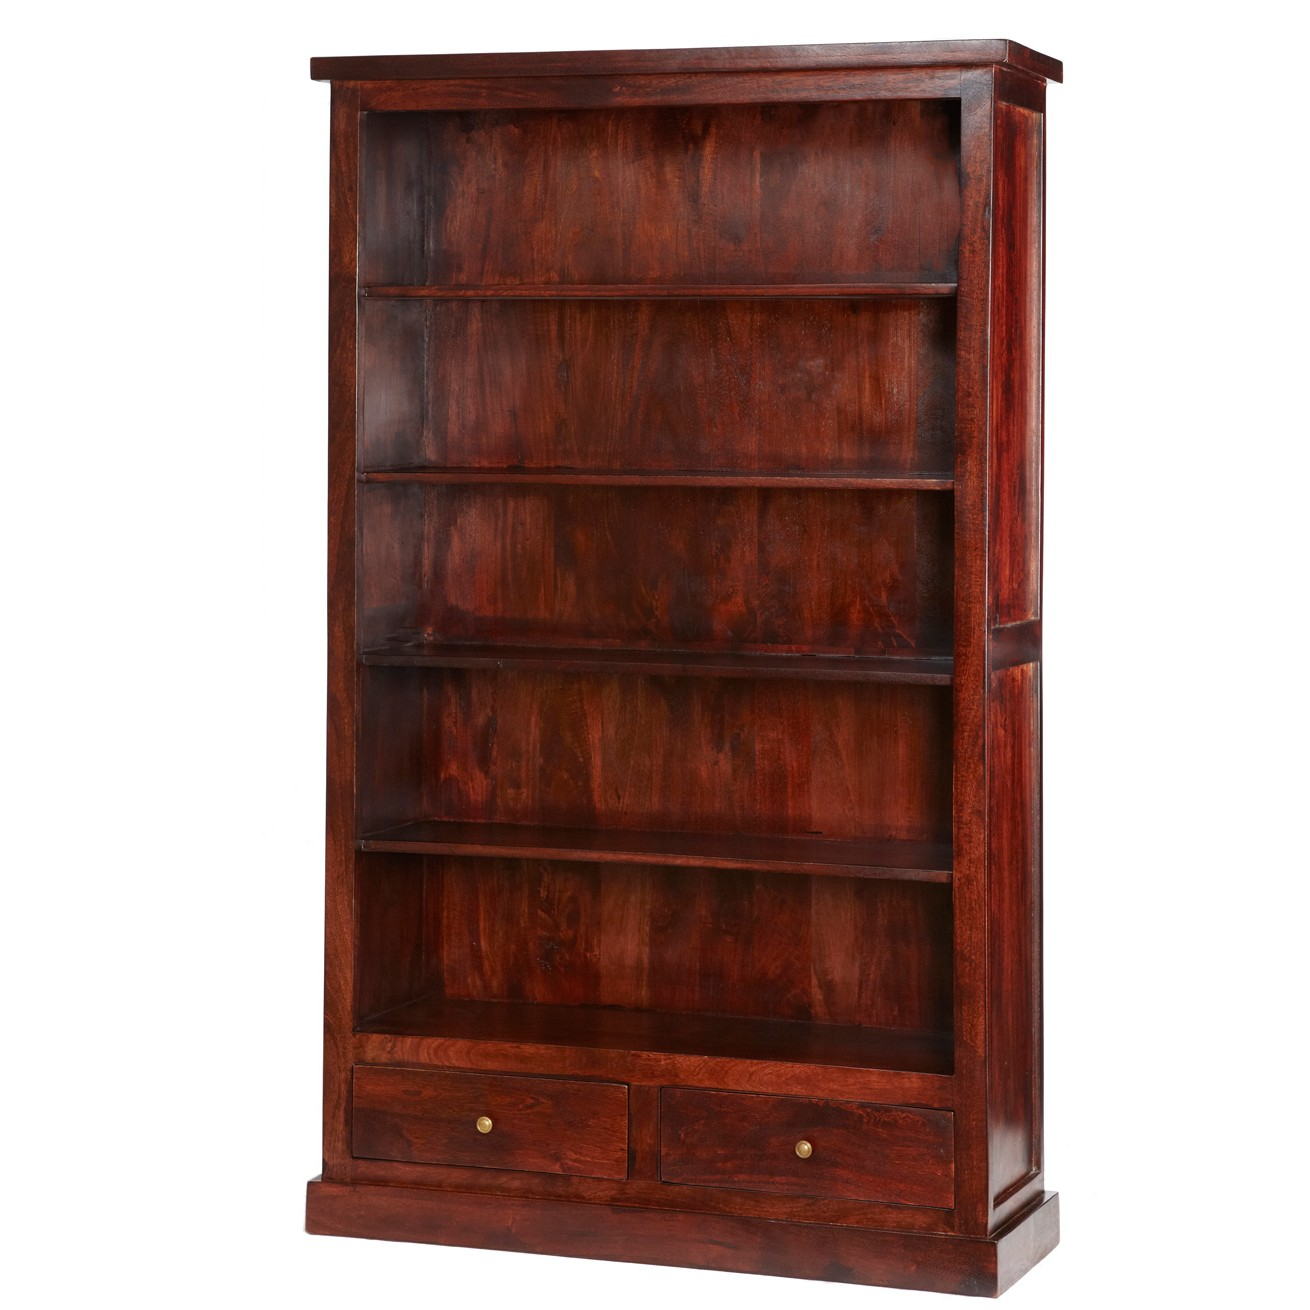 Bedside Bookshelf Maharani Dark Wood Large Bookcase With Drawers